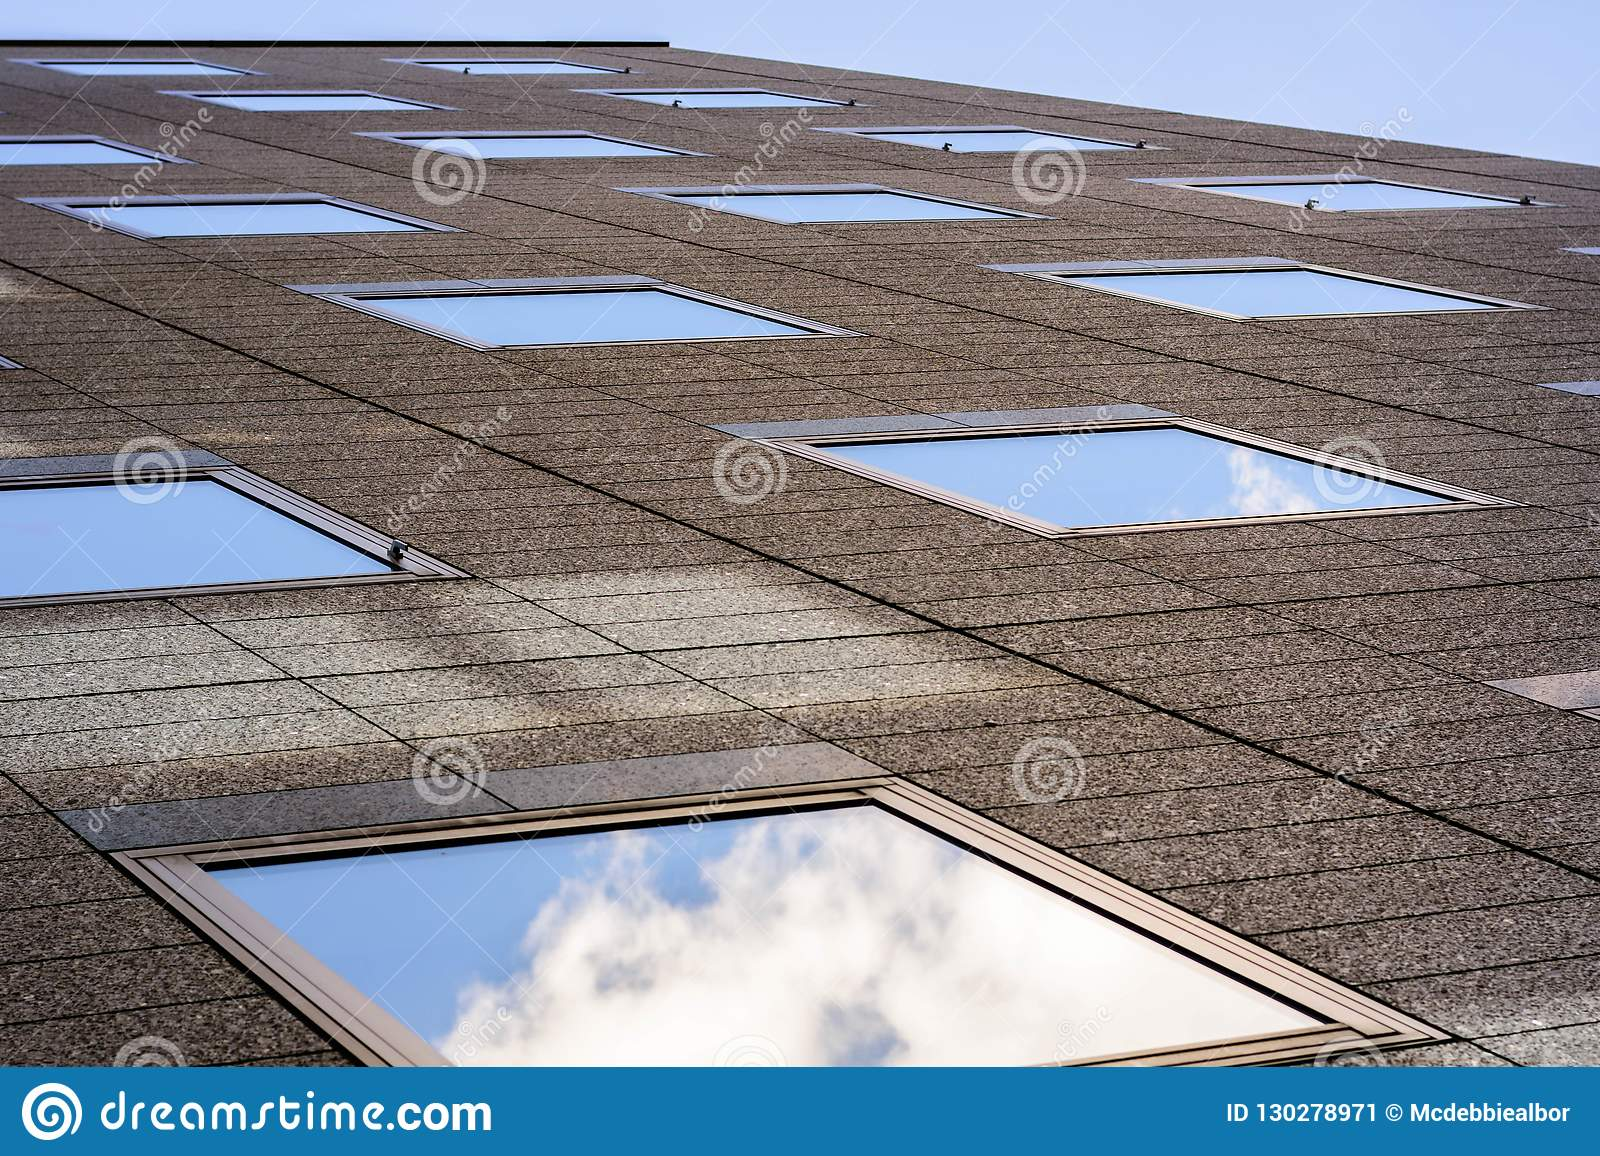 Brown office building exterior with square mirror patterns reflecting the sky and the clouds shot from the bottom.